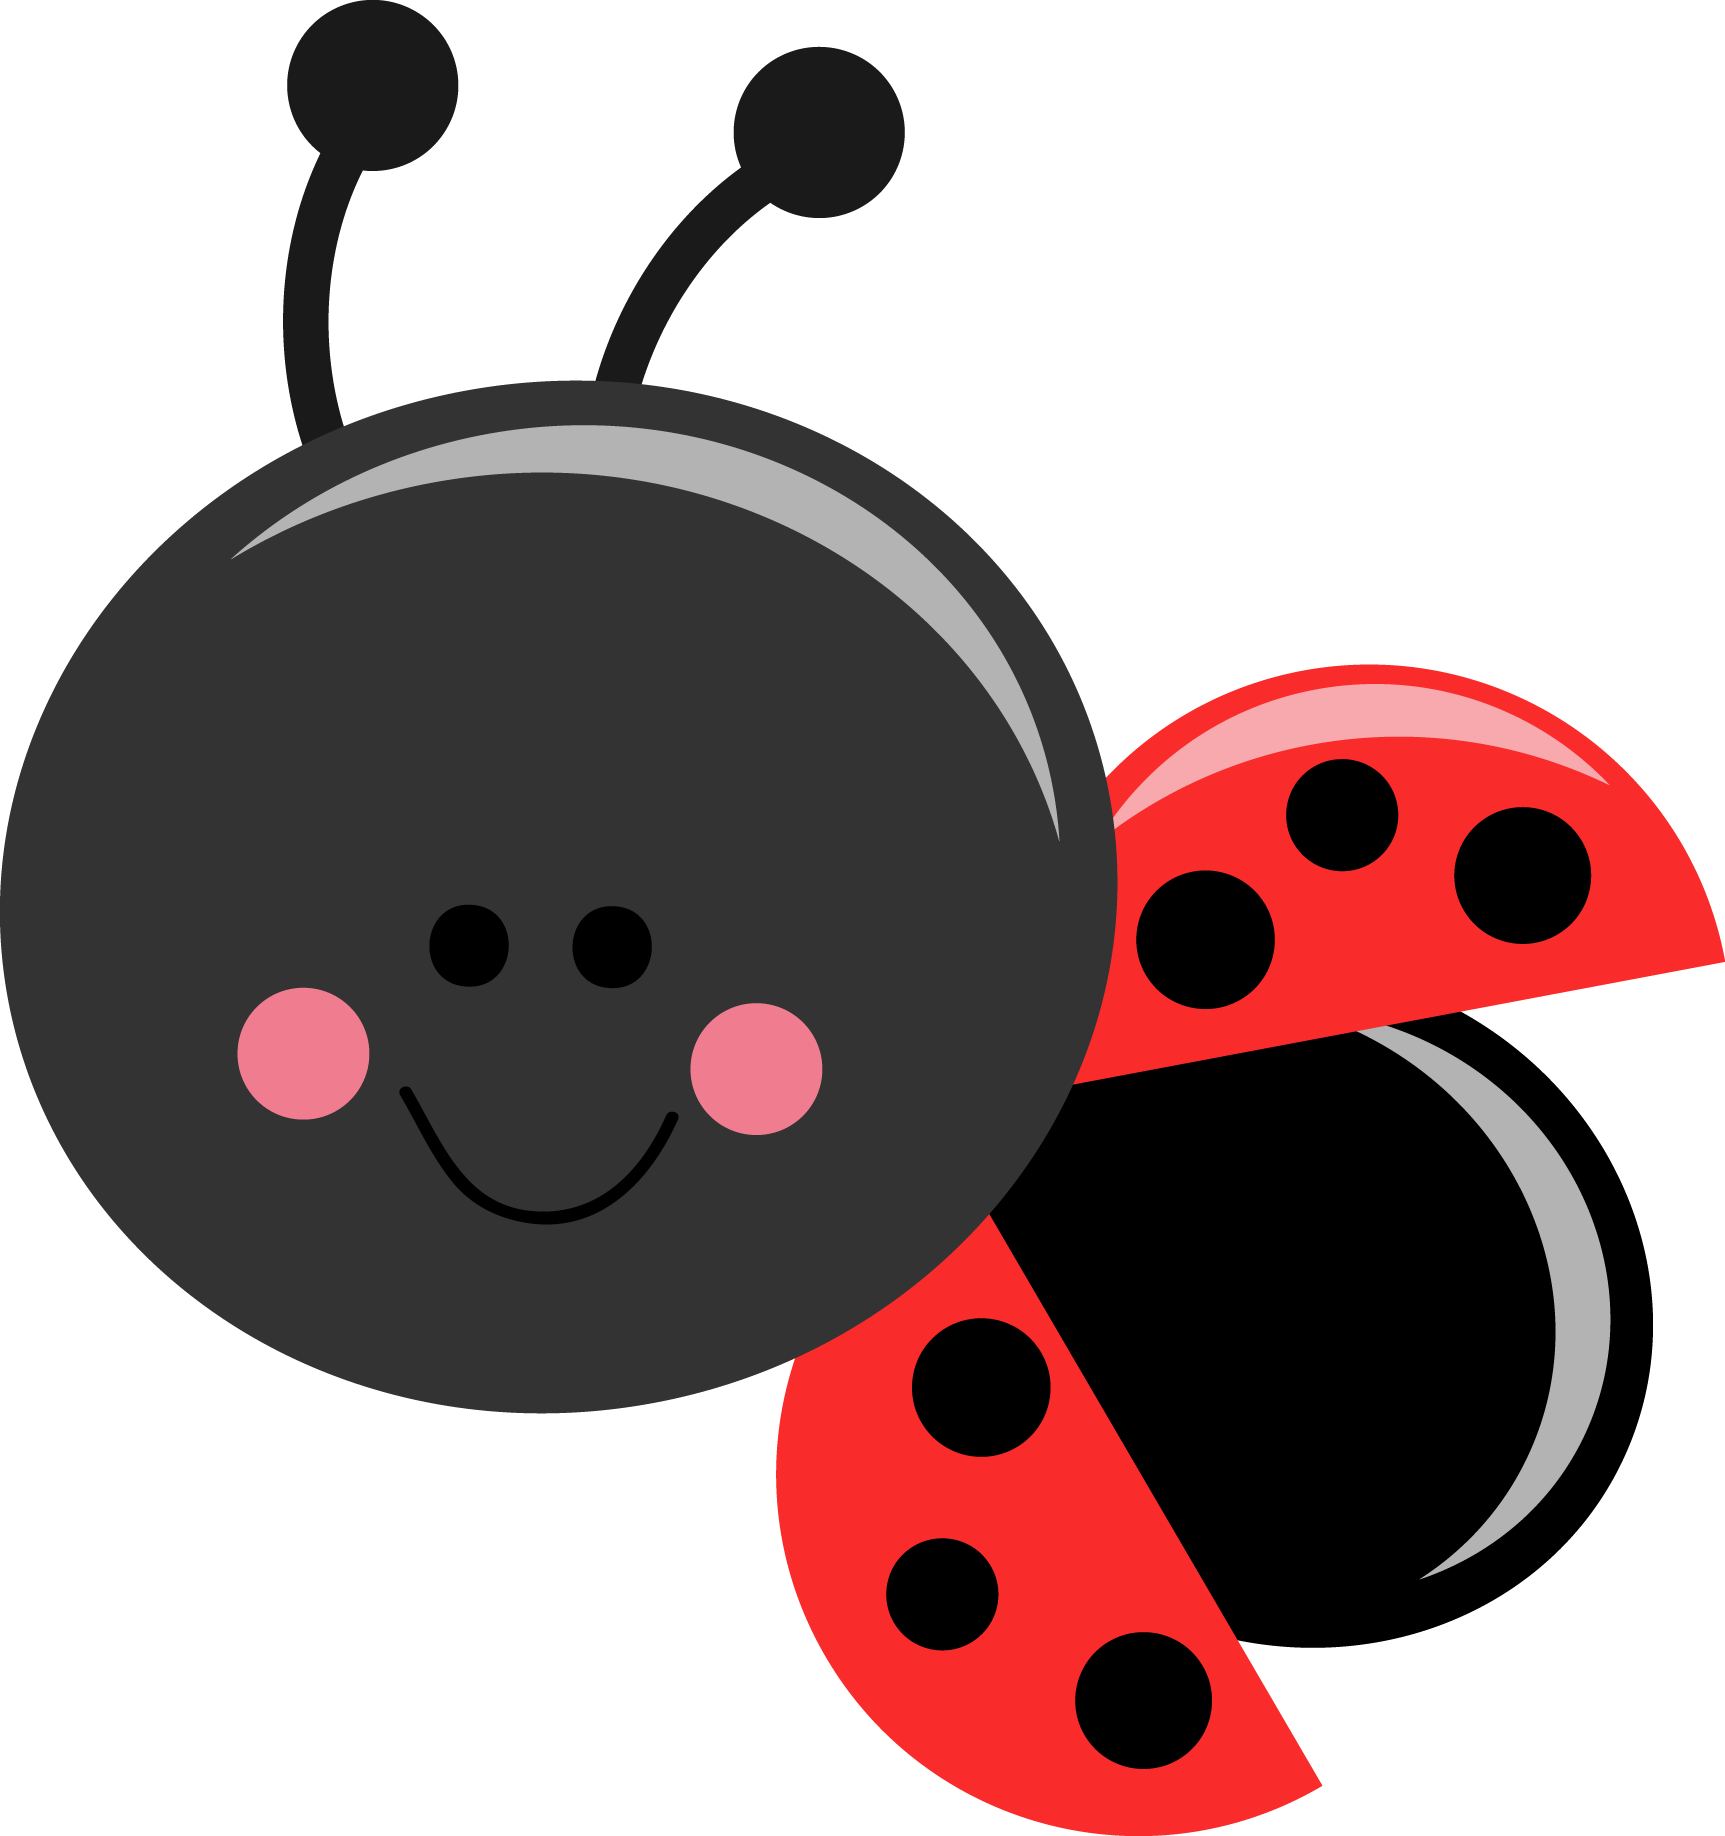 Gardening clipart garden bug. My grafico you are